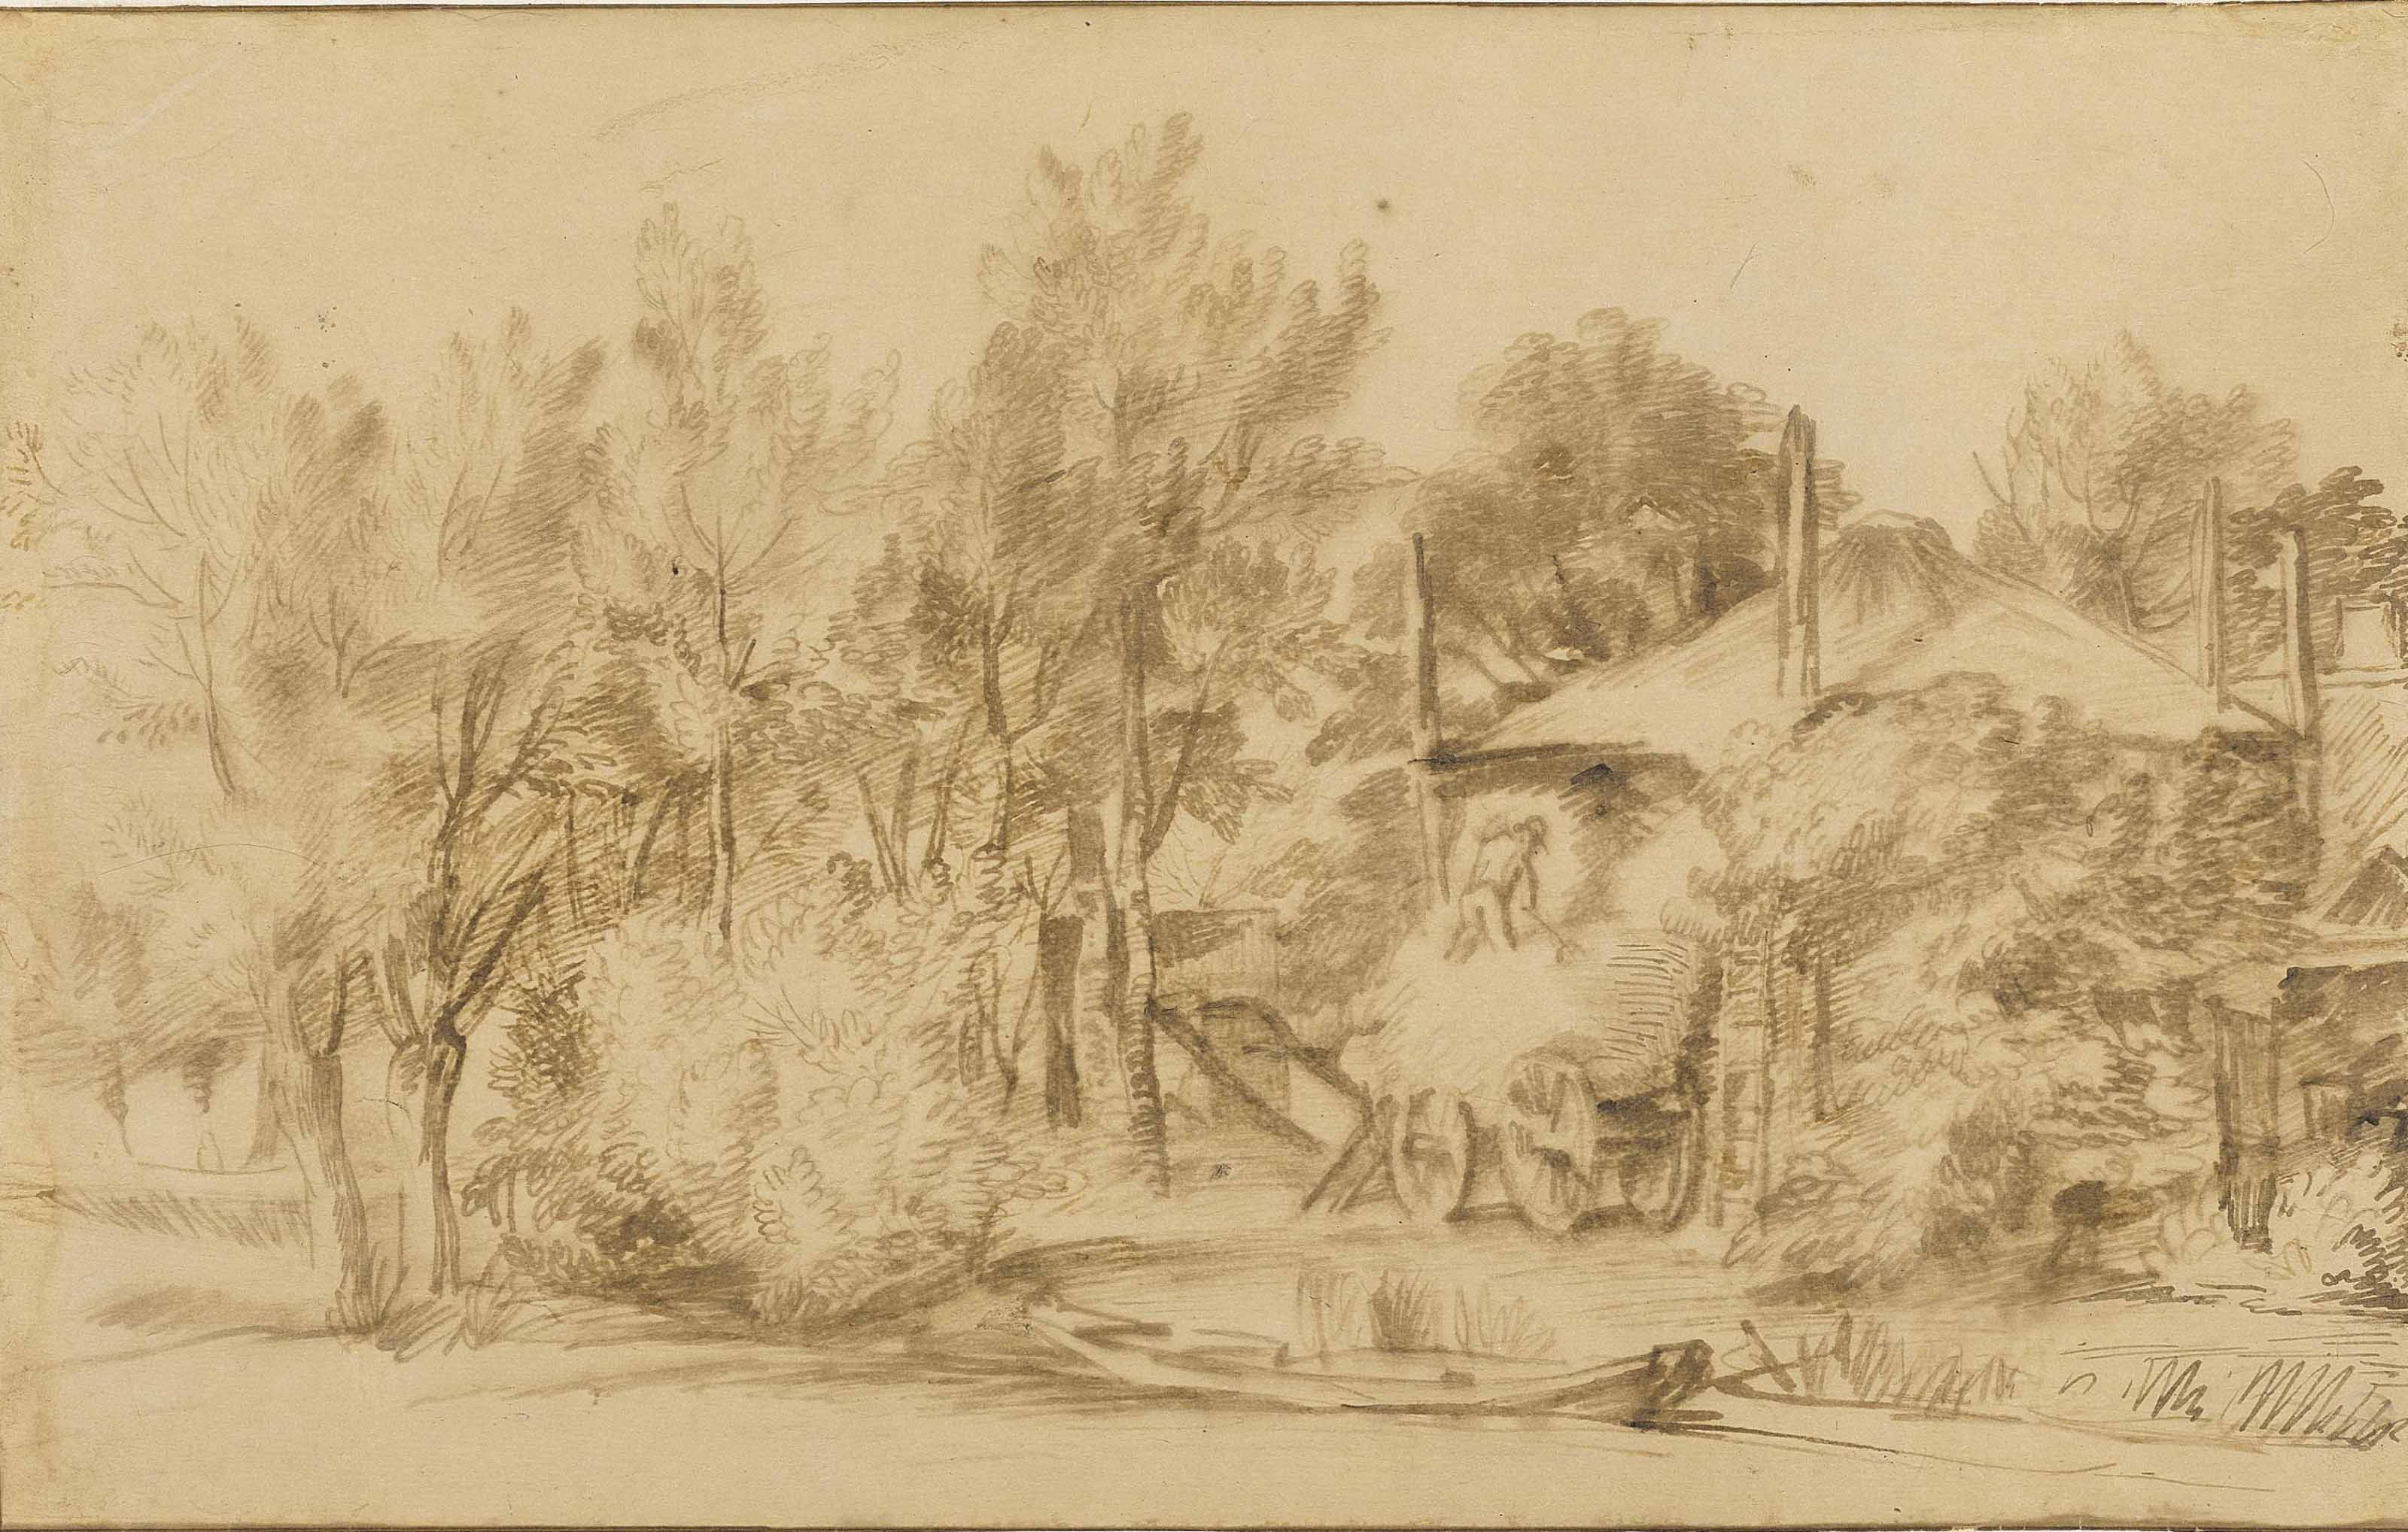 A wooded landscape with a farm and haycart